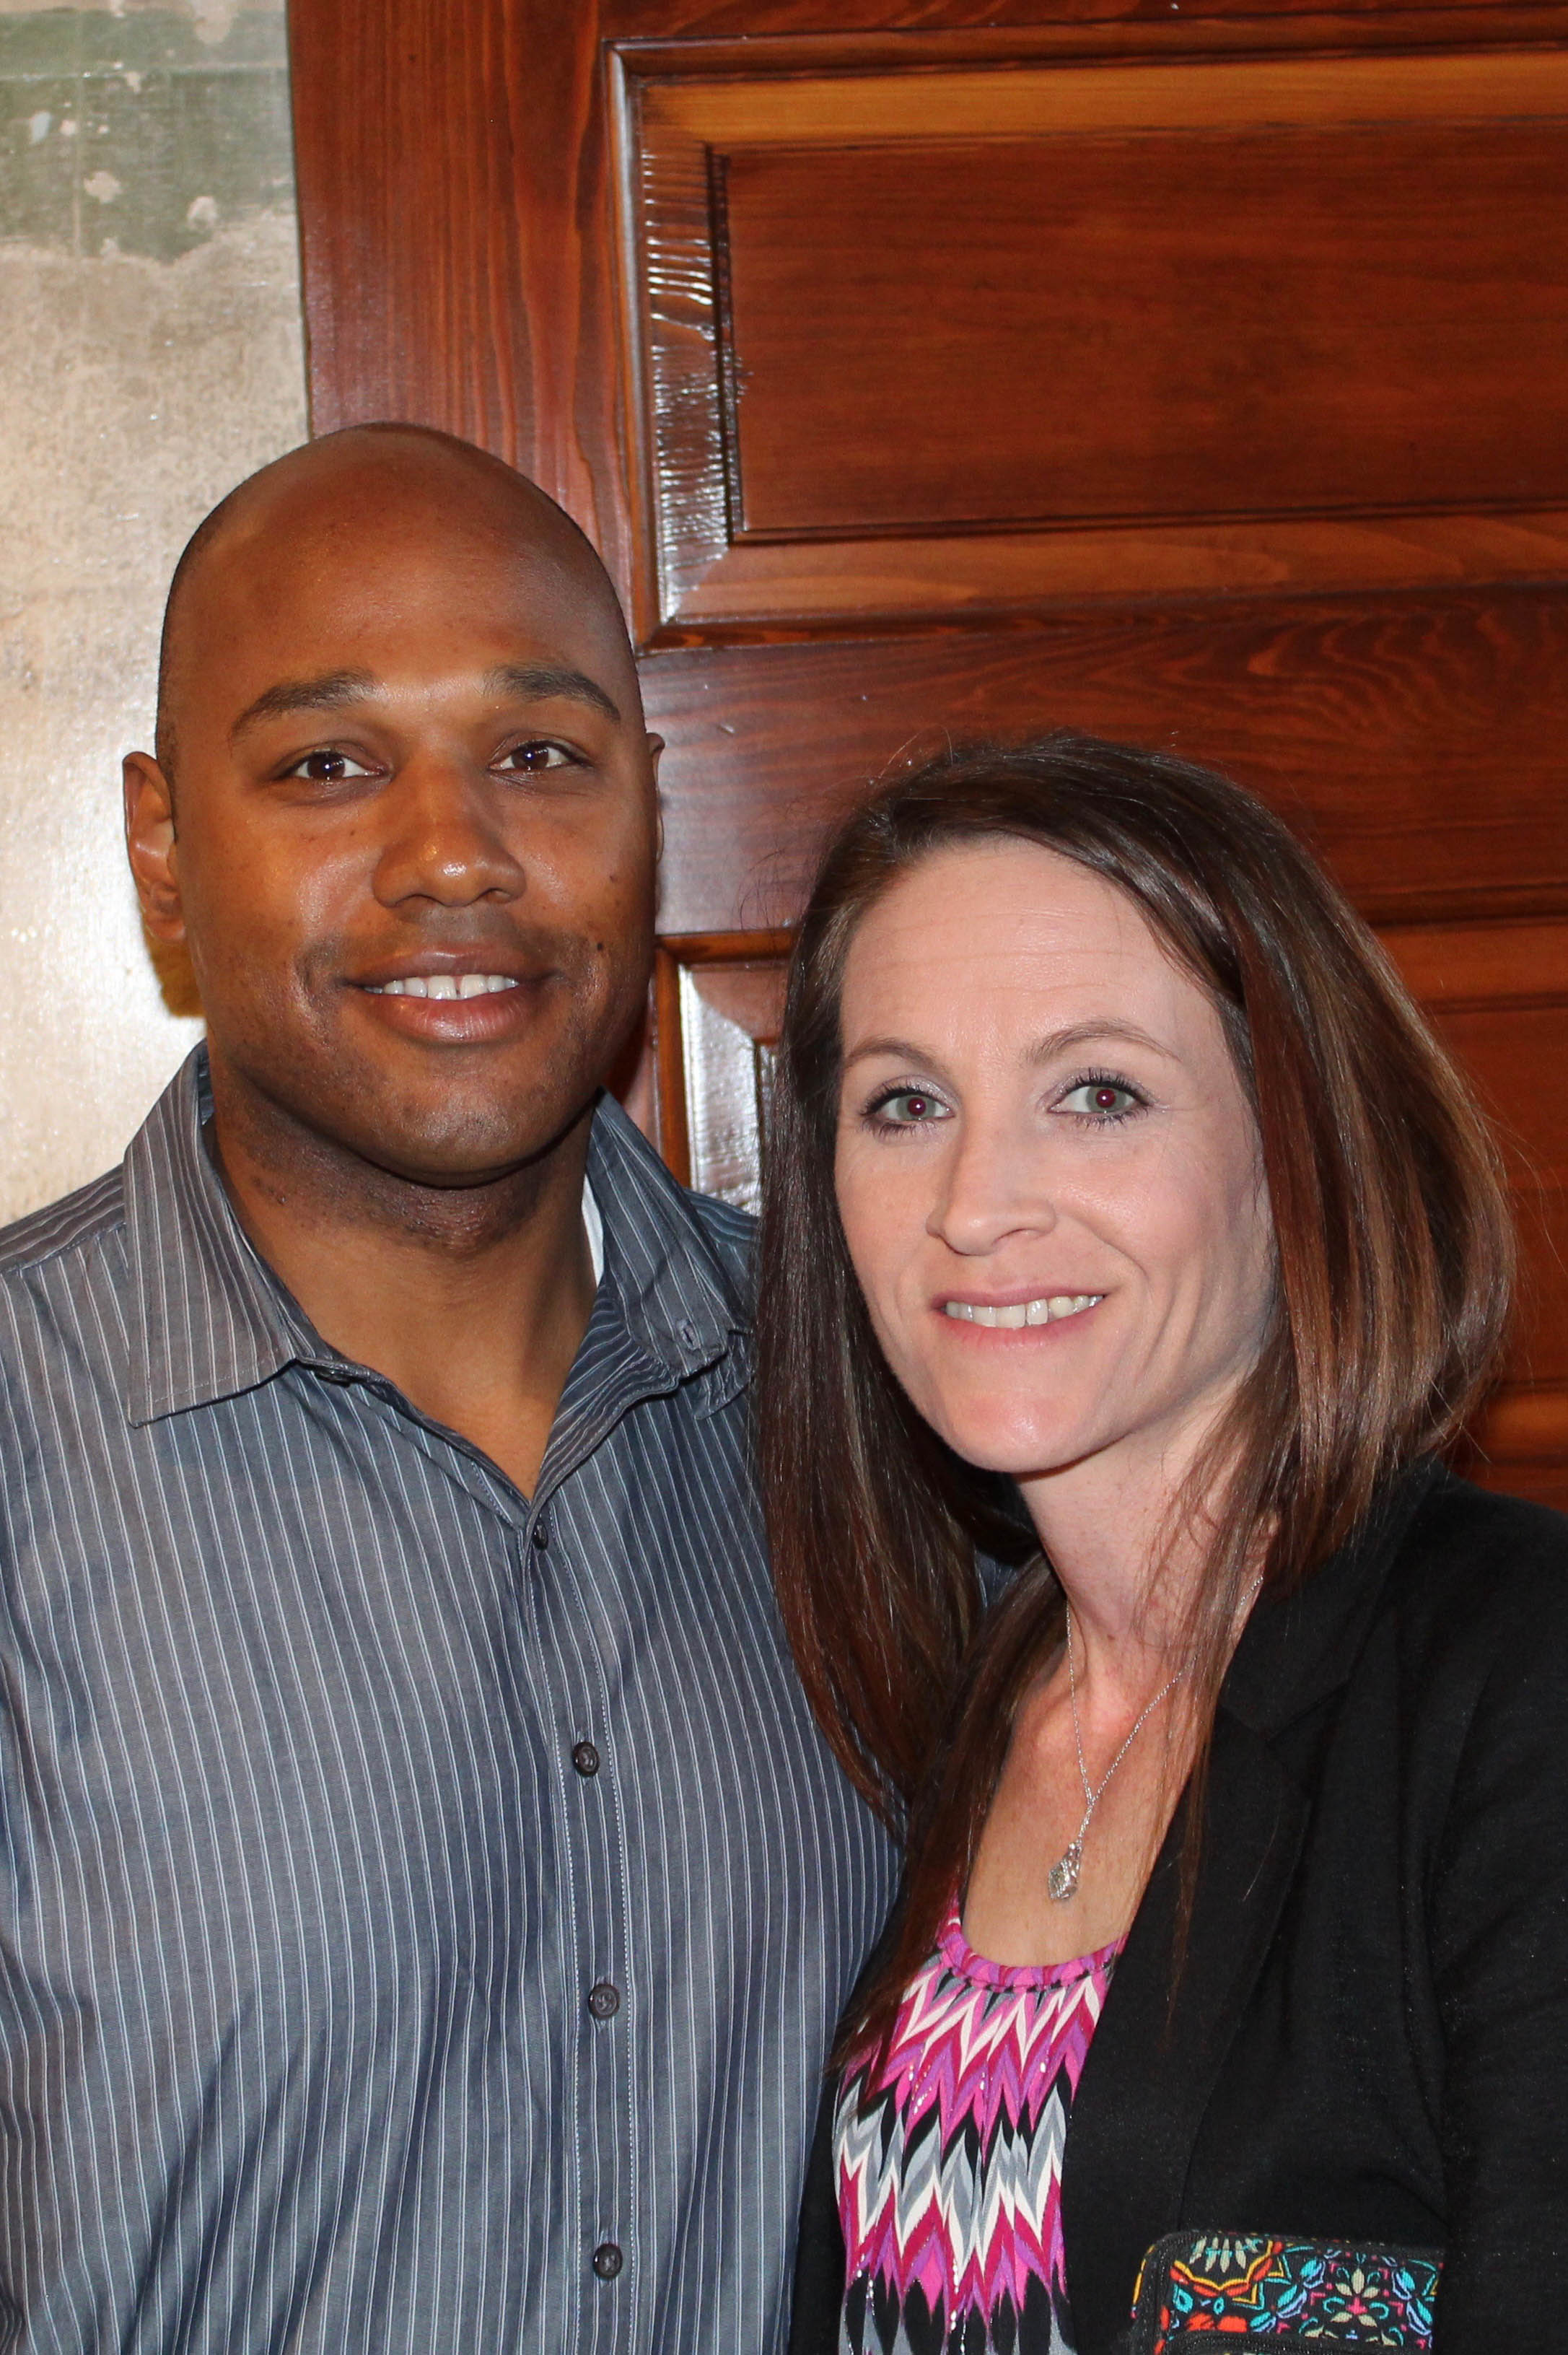 Lee and Sara Shavers